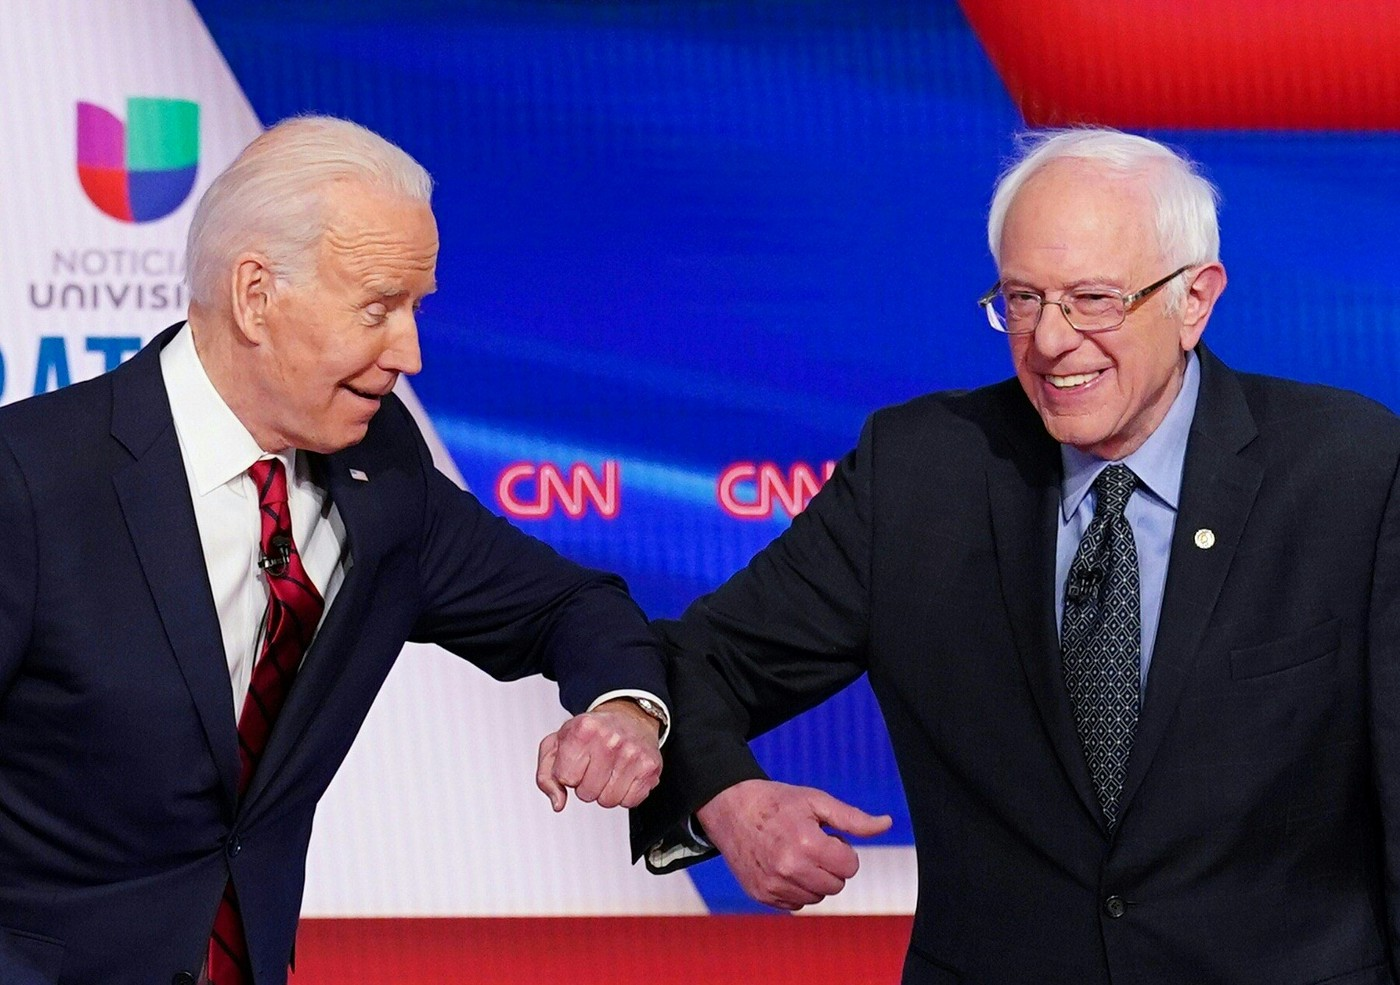 A photo of Joe Biden and Bernie Sanders elbow bumping each other at the 11th Democratic Party 2020 presidential debate.